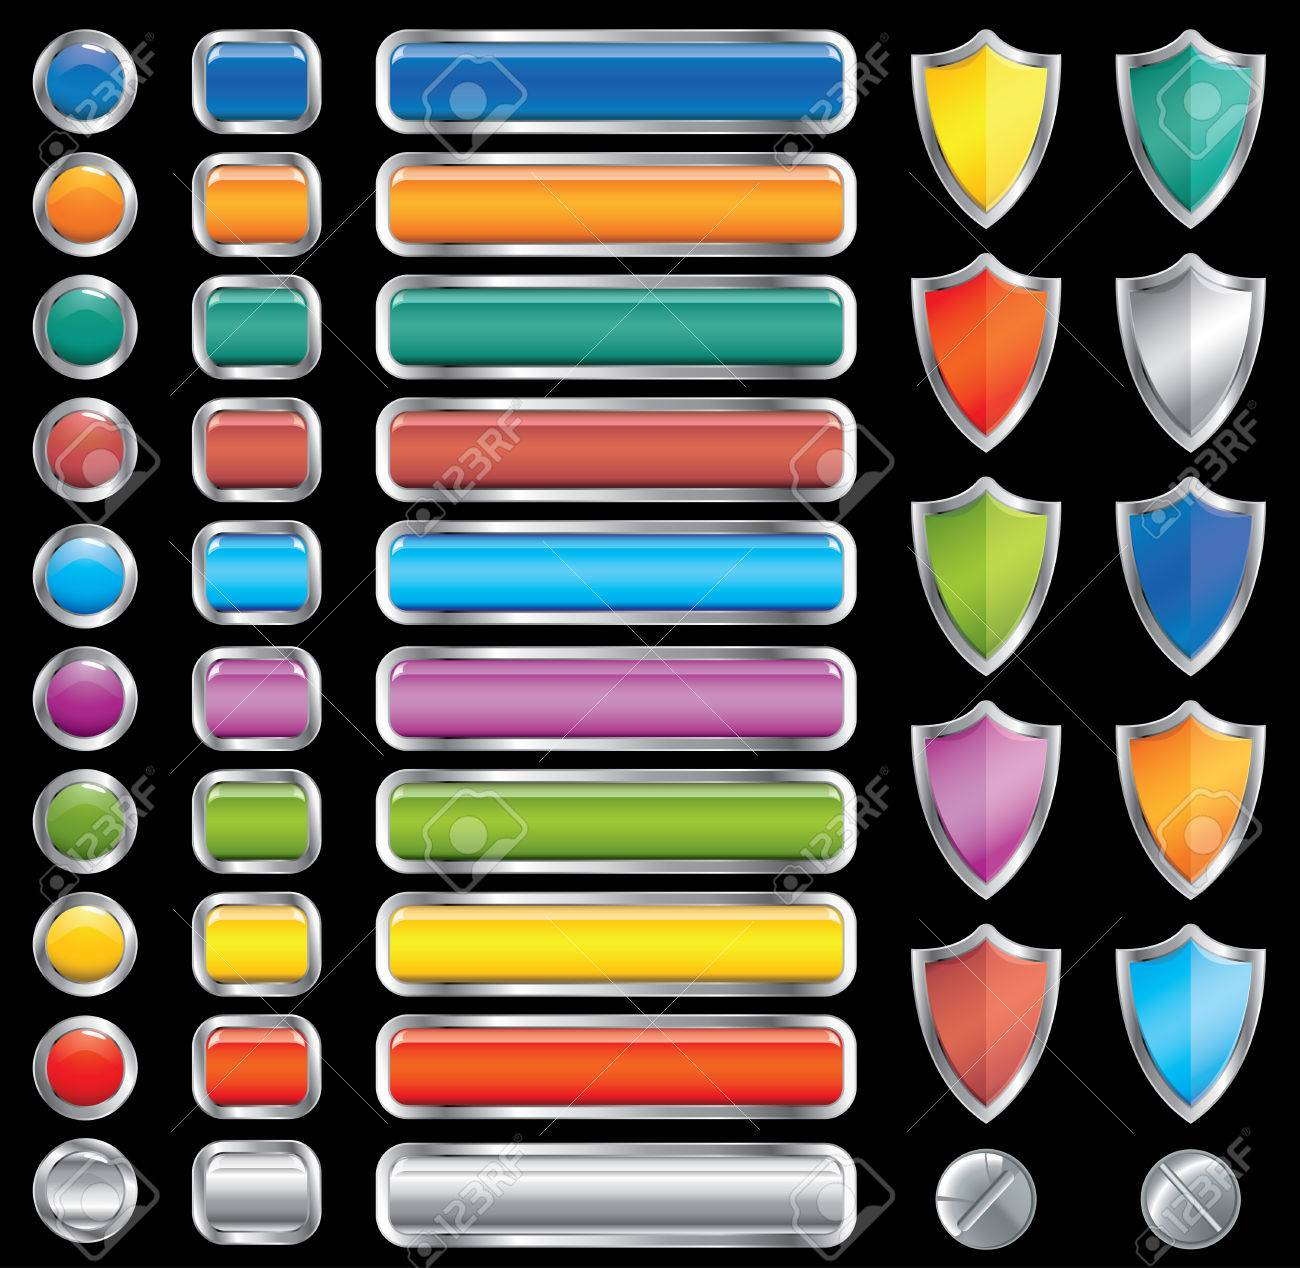 motley buttons, shields and screw set (vector,CMYK) Stock Vector - 6564527